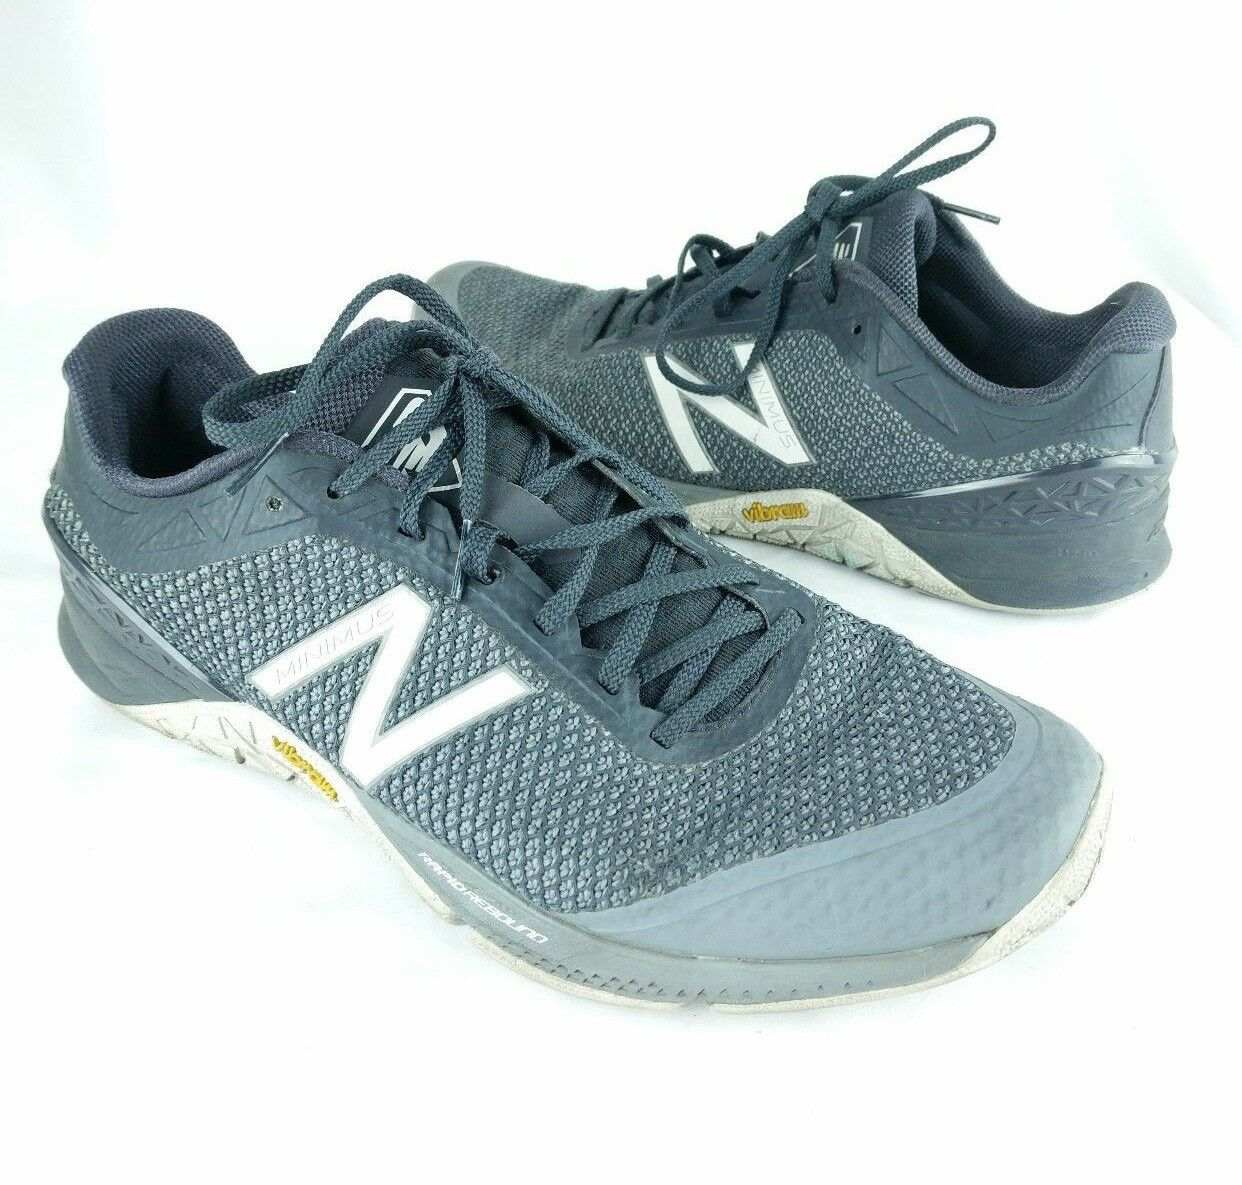 New Balance Mens Minimus 40 Trail Running shoes SZ 11 Vibram Cross Training